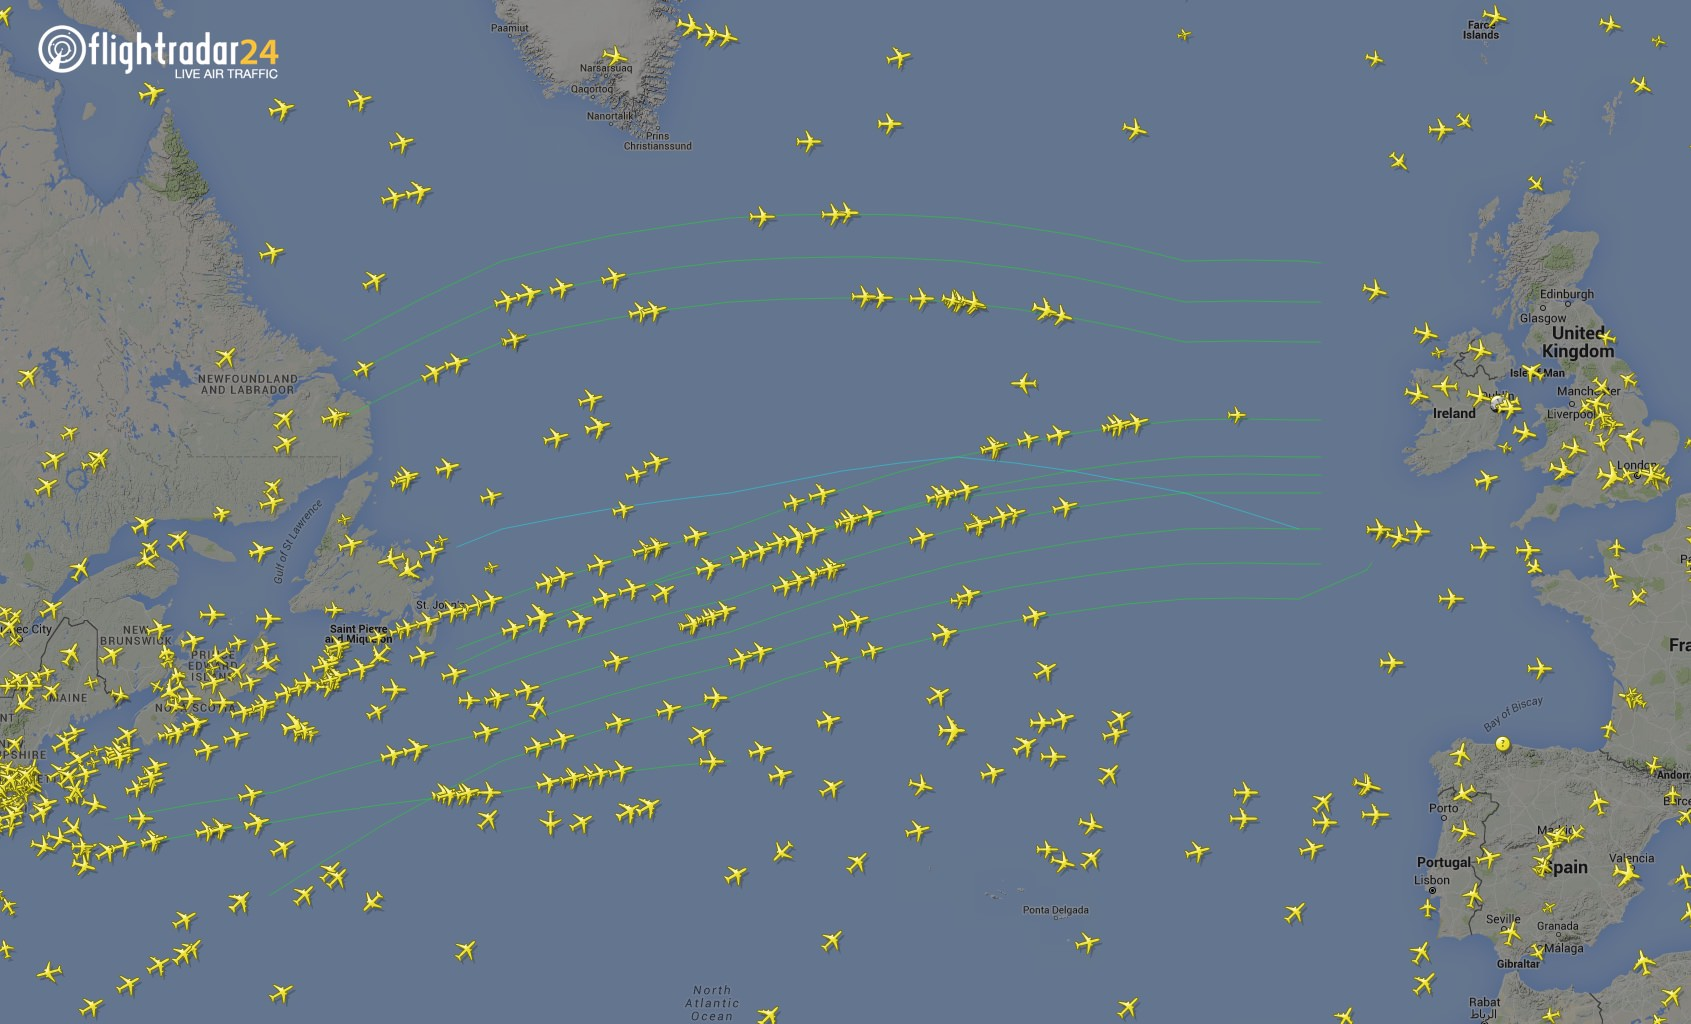 Flights following the North Atlantic Tracks